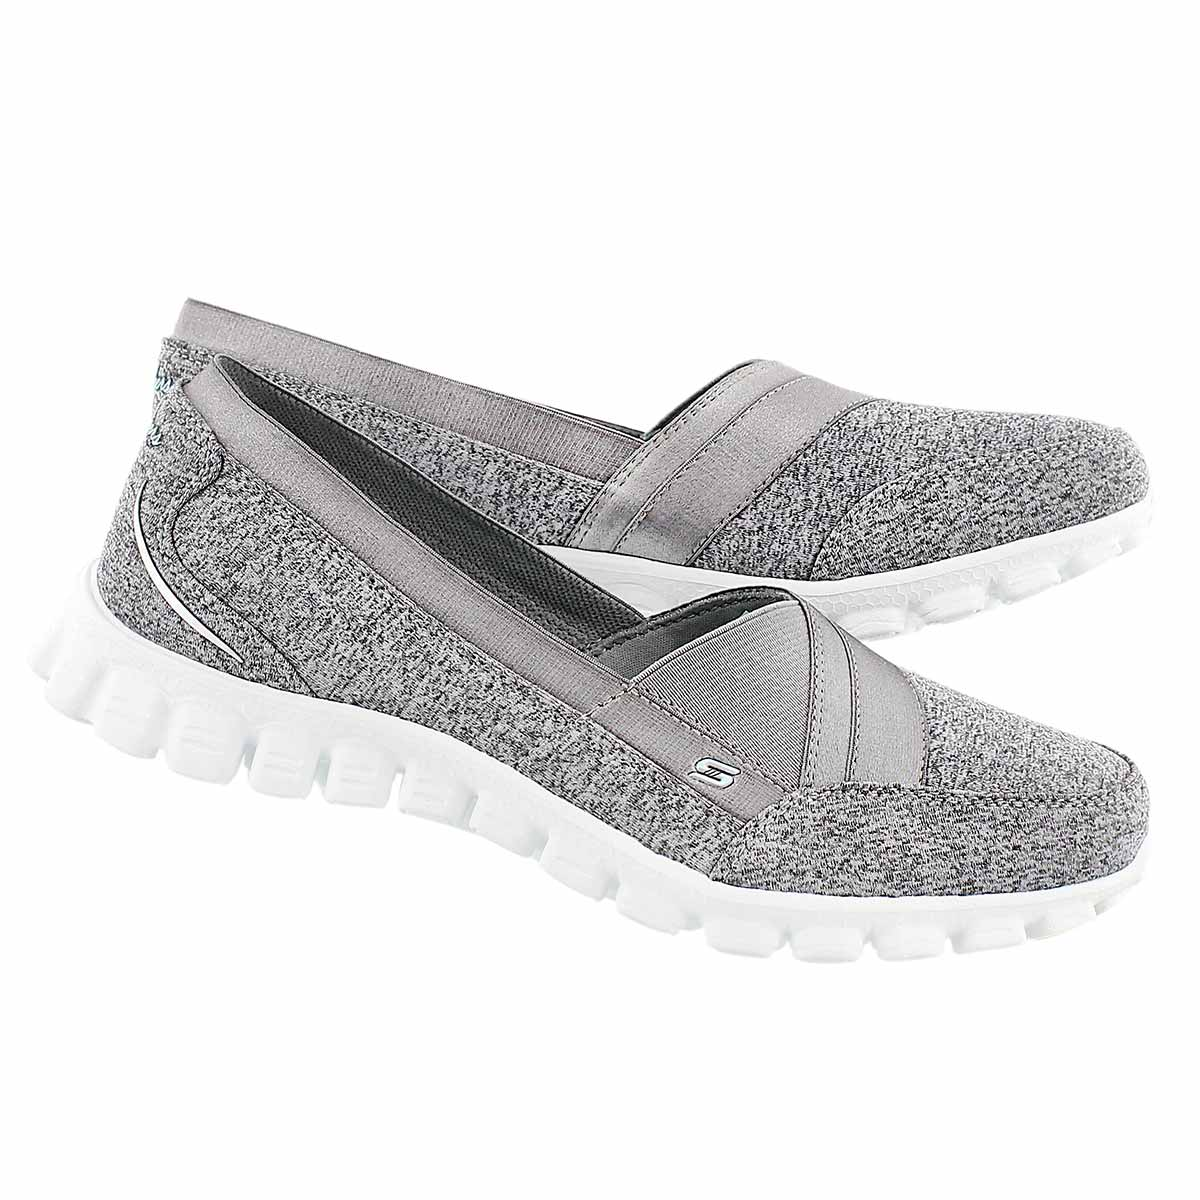 Lds Fascination gry/wht slipon walking